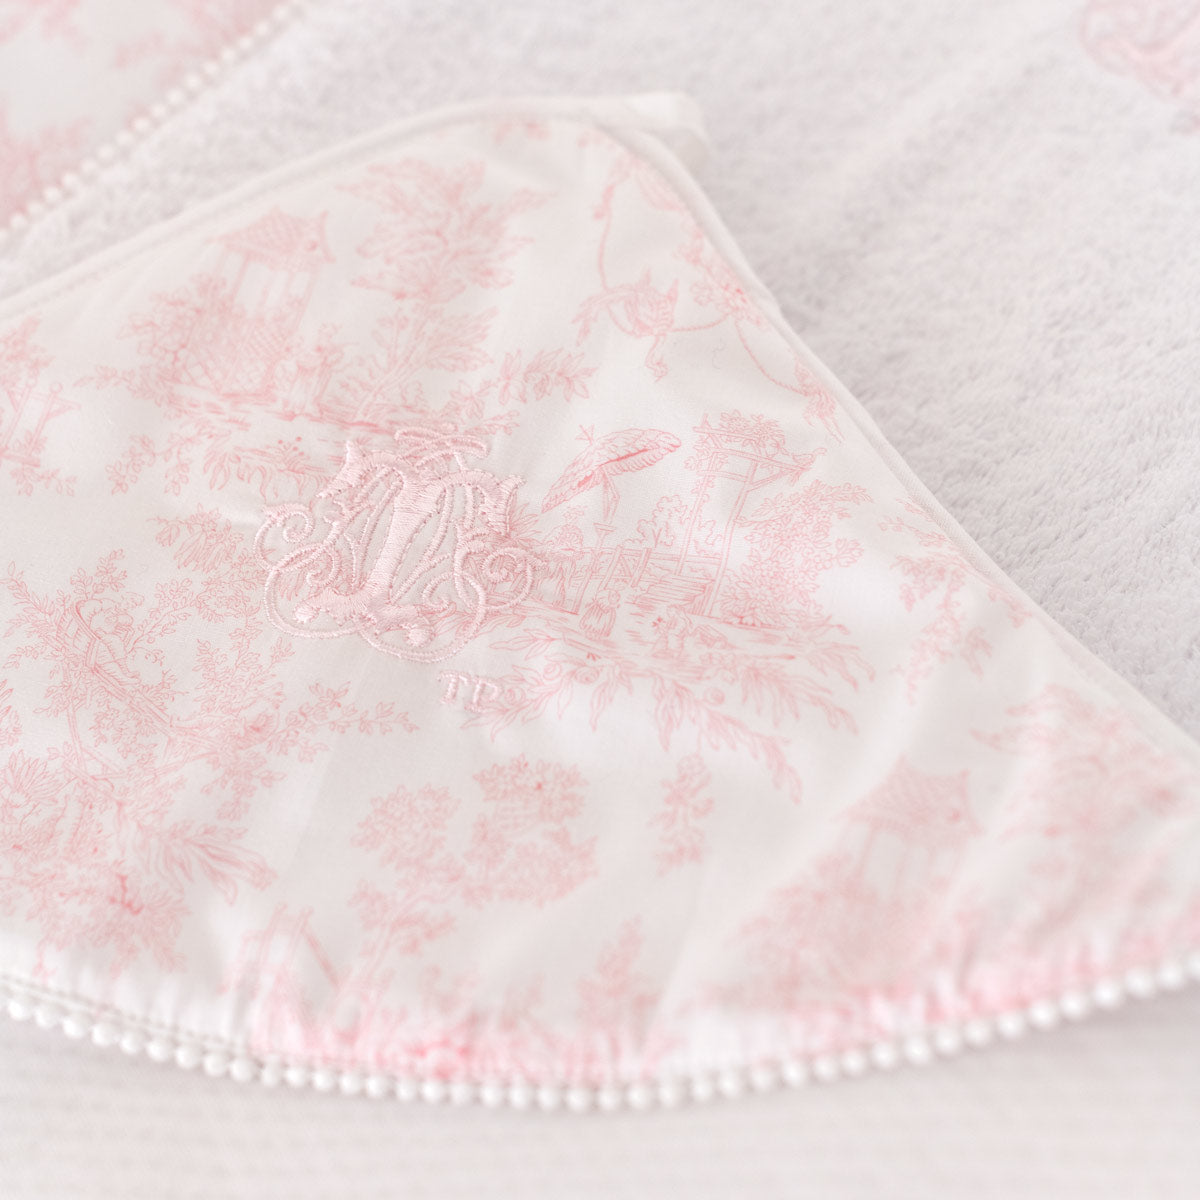 Theophile & Patachou Summer Birth Cape 80X80 cm - Sweet Pink